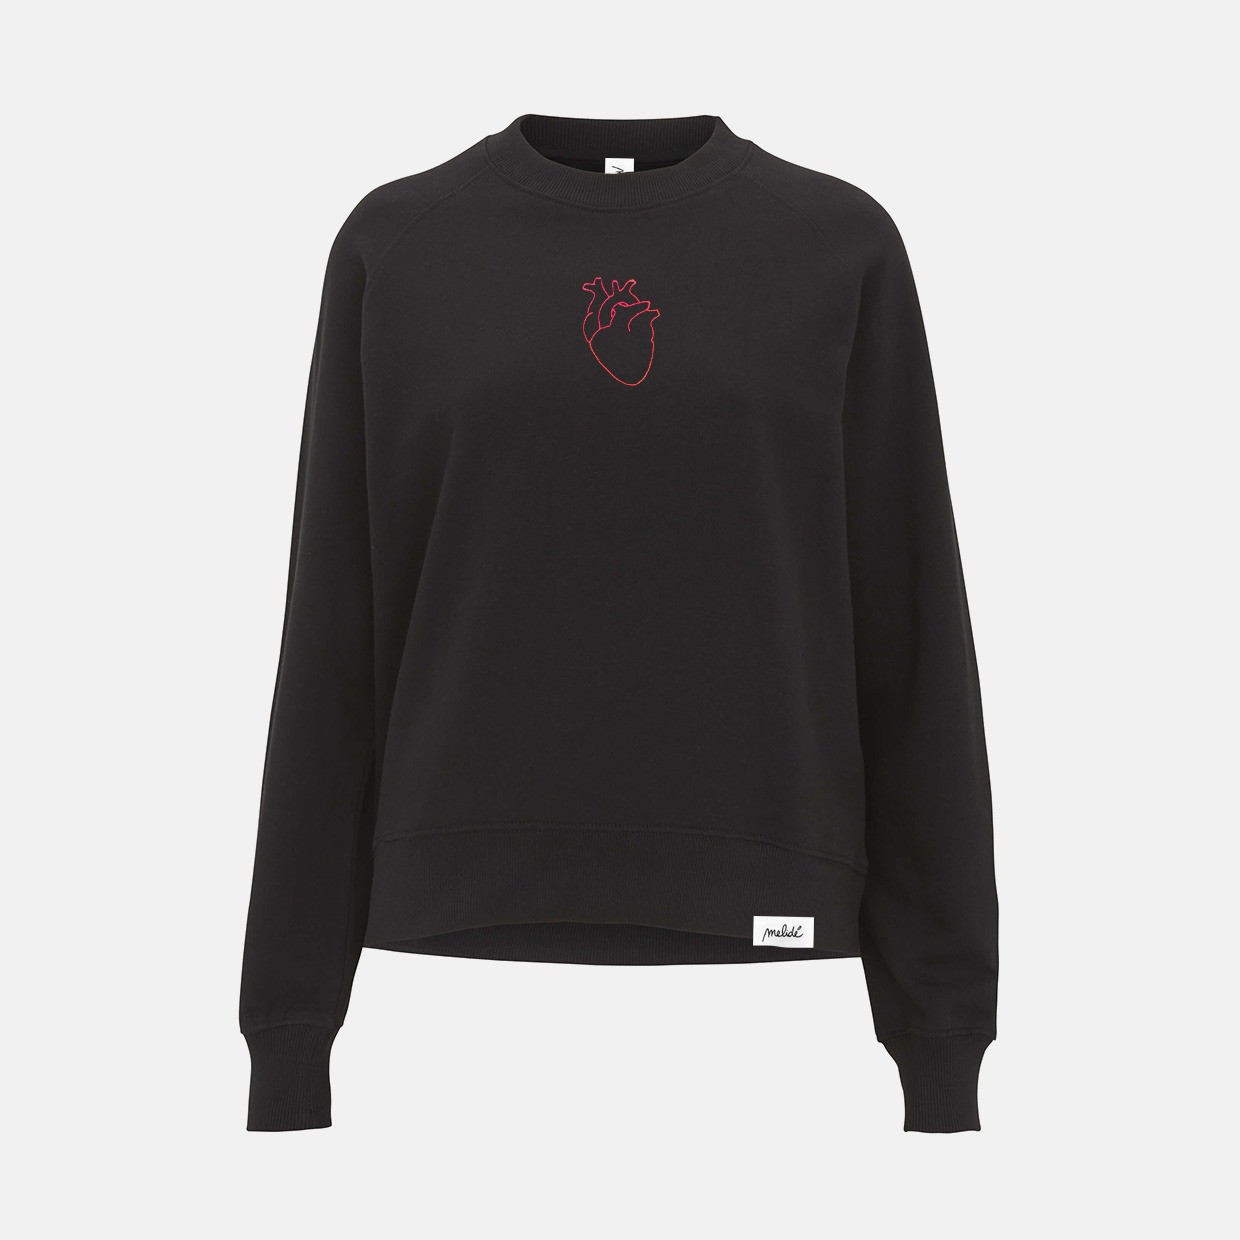 The LINEHEART raglan sweatshirt